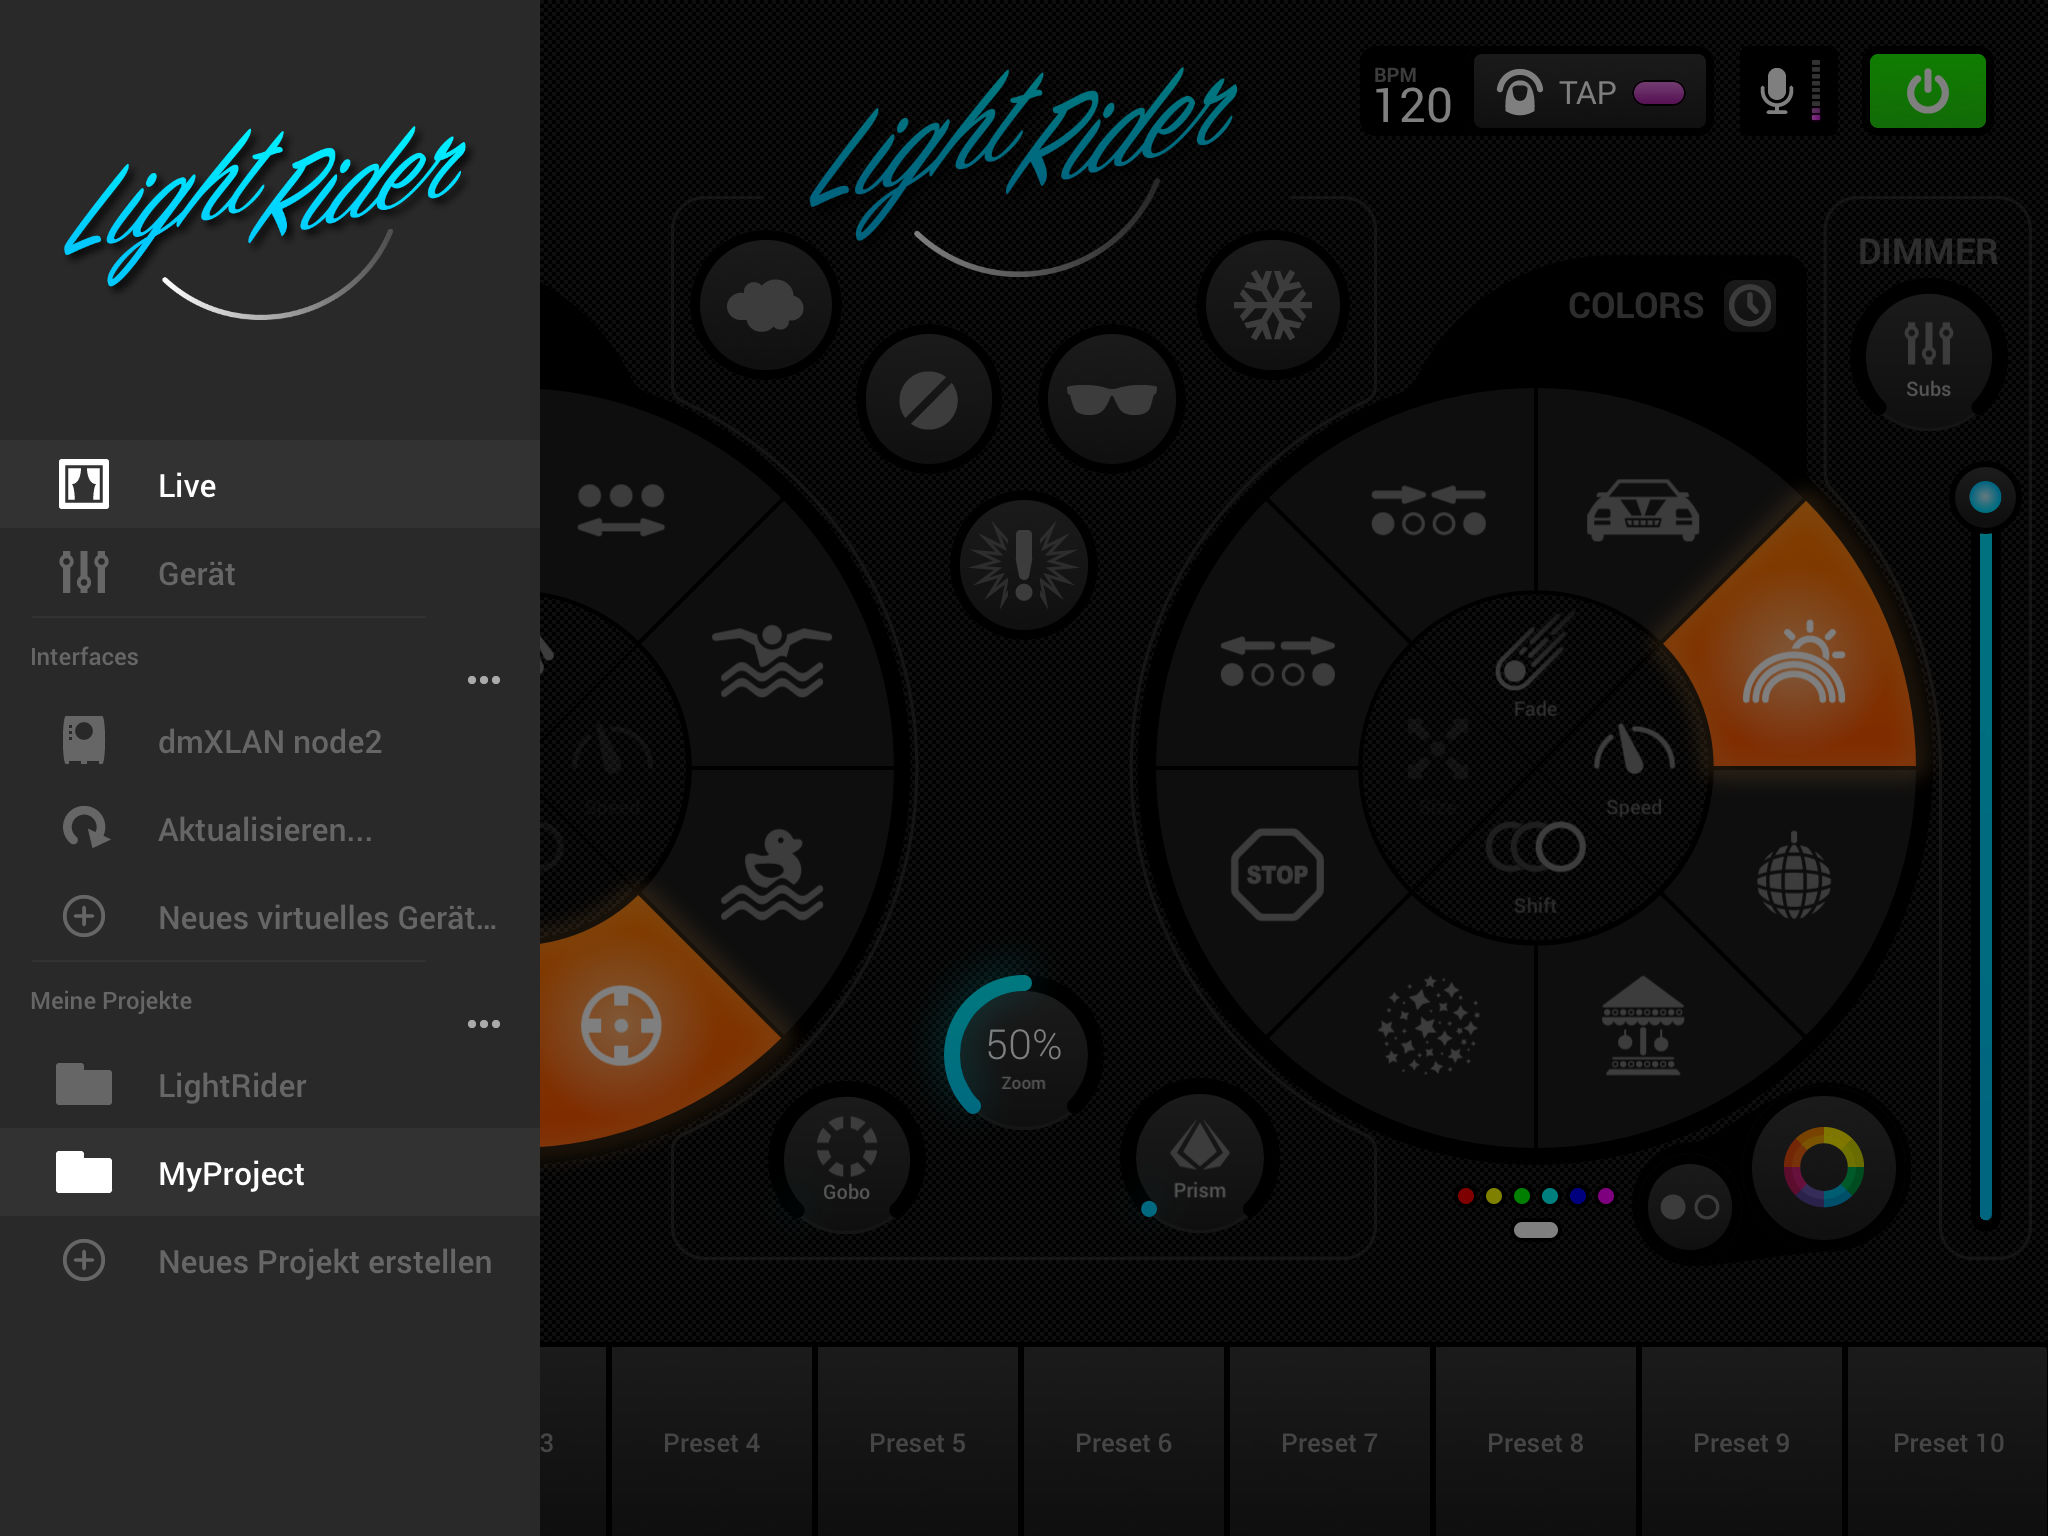 Wlan Dimmer Light Rider Dmx Light Control App Ranking And Store Data App Annie